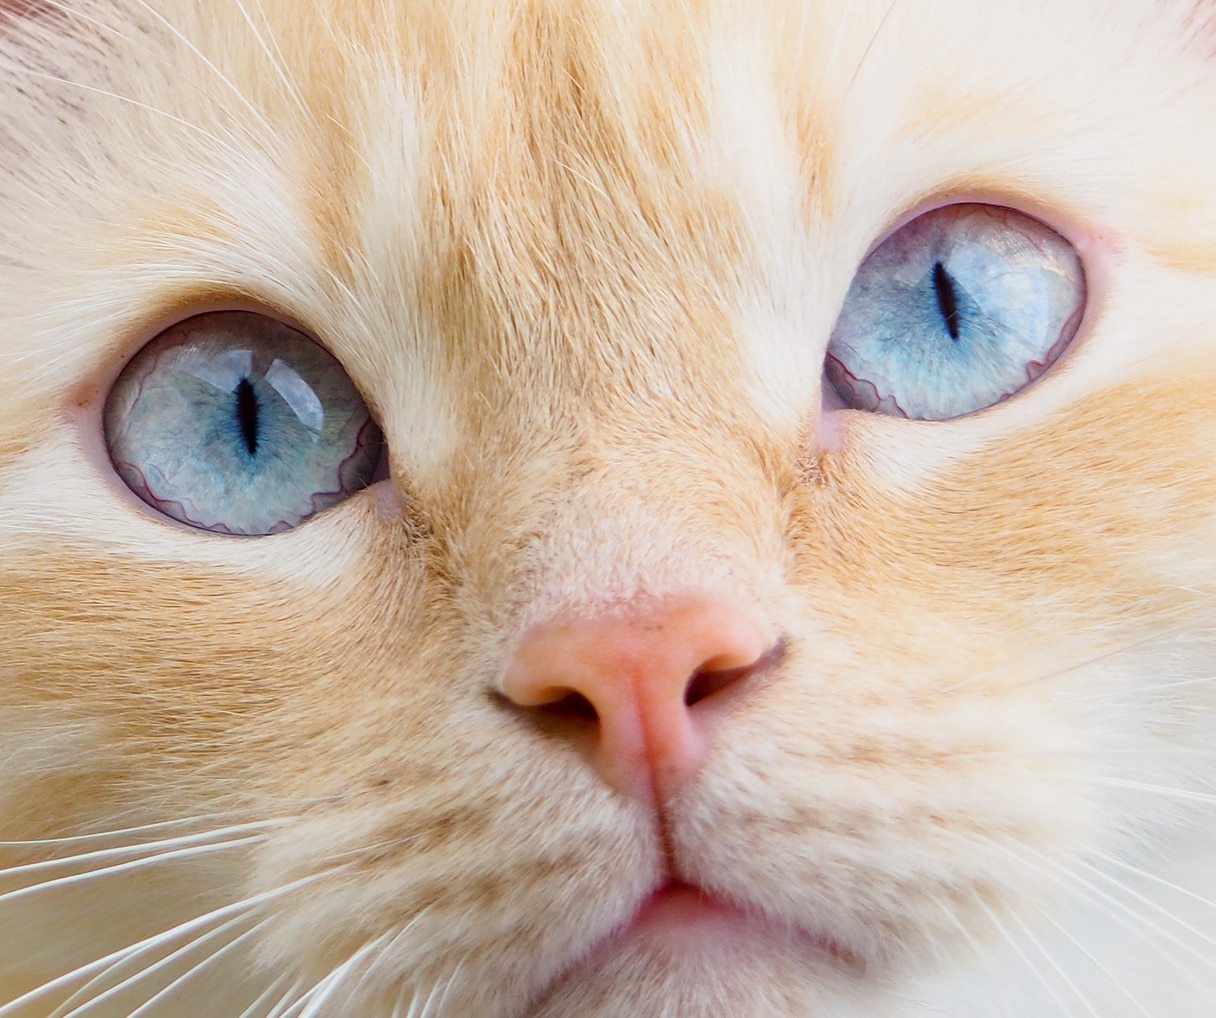 can cats get conjunctivitis